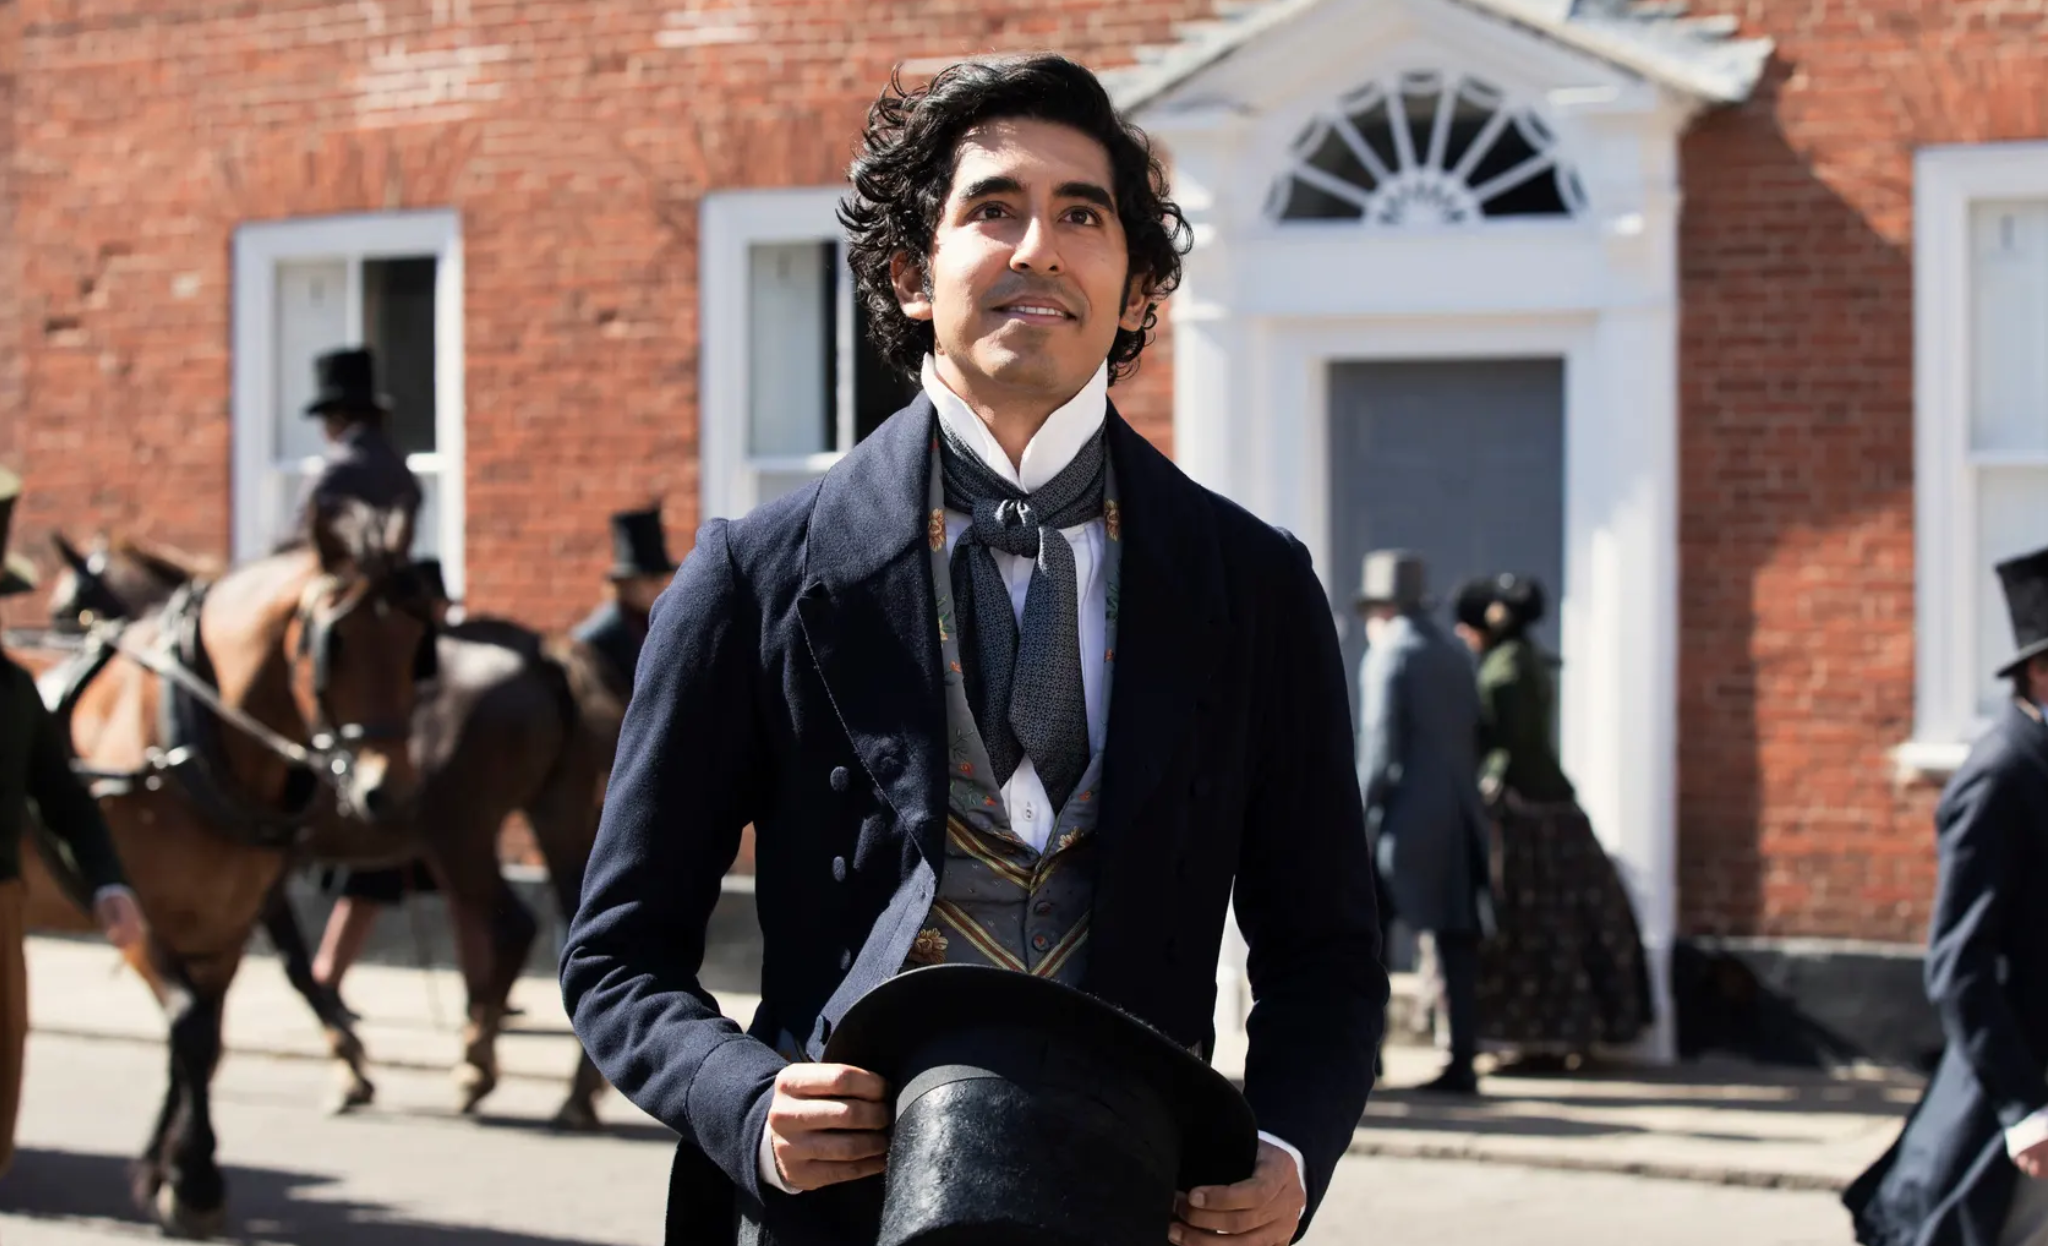 The Personal History Of David Copperfield review: Dev Patel steals show